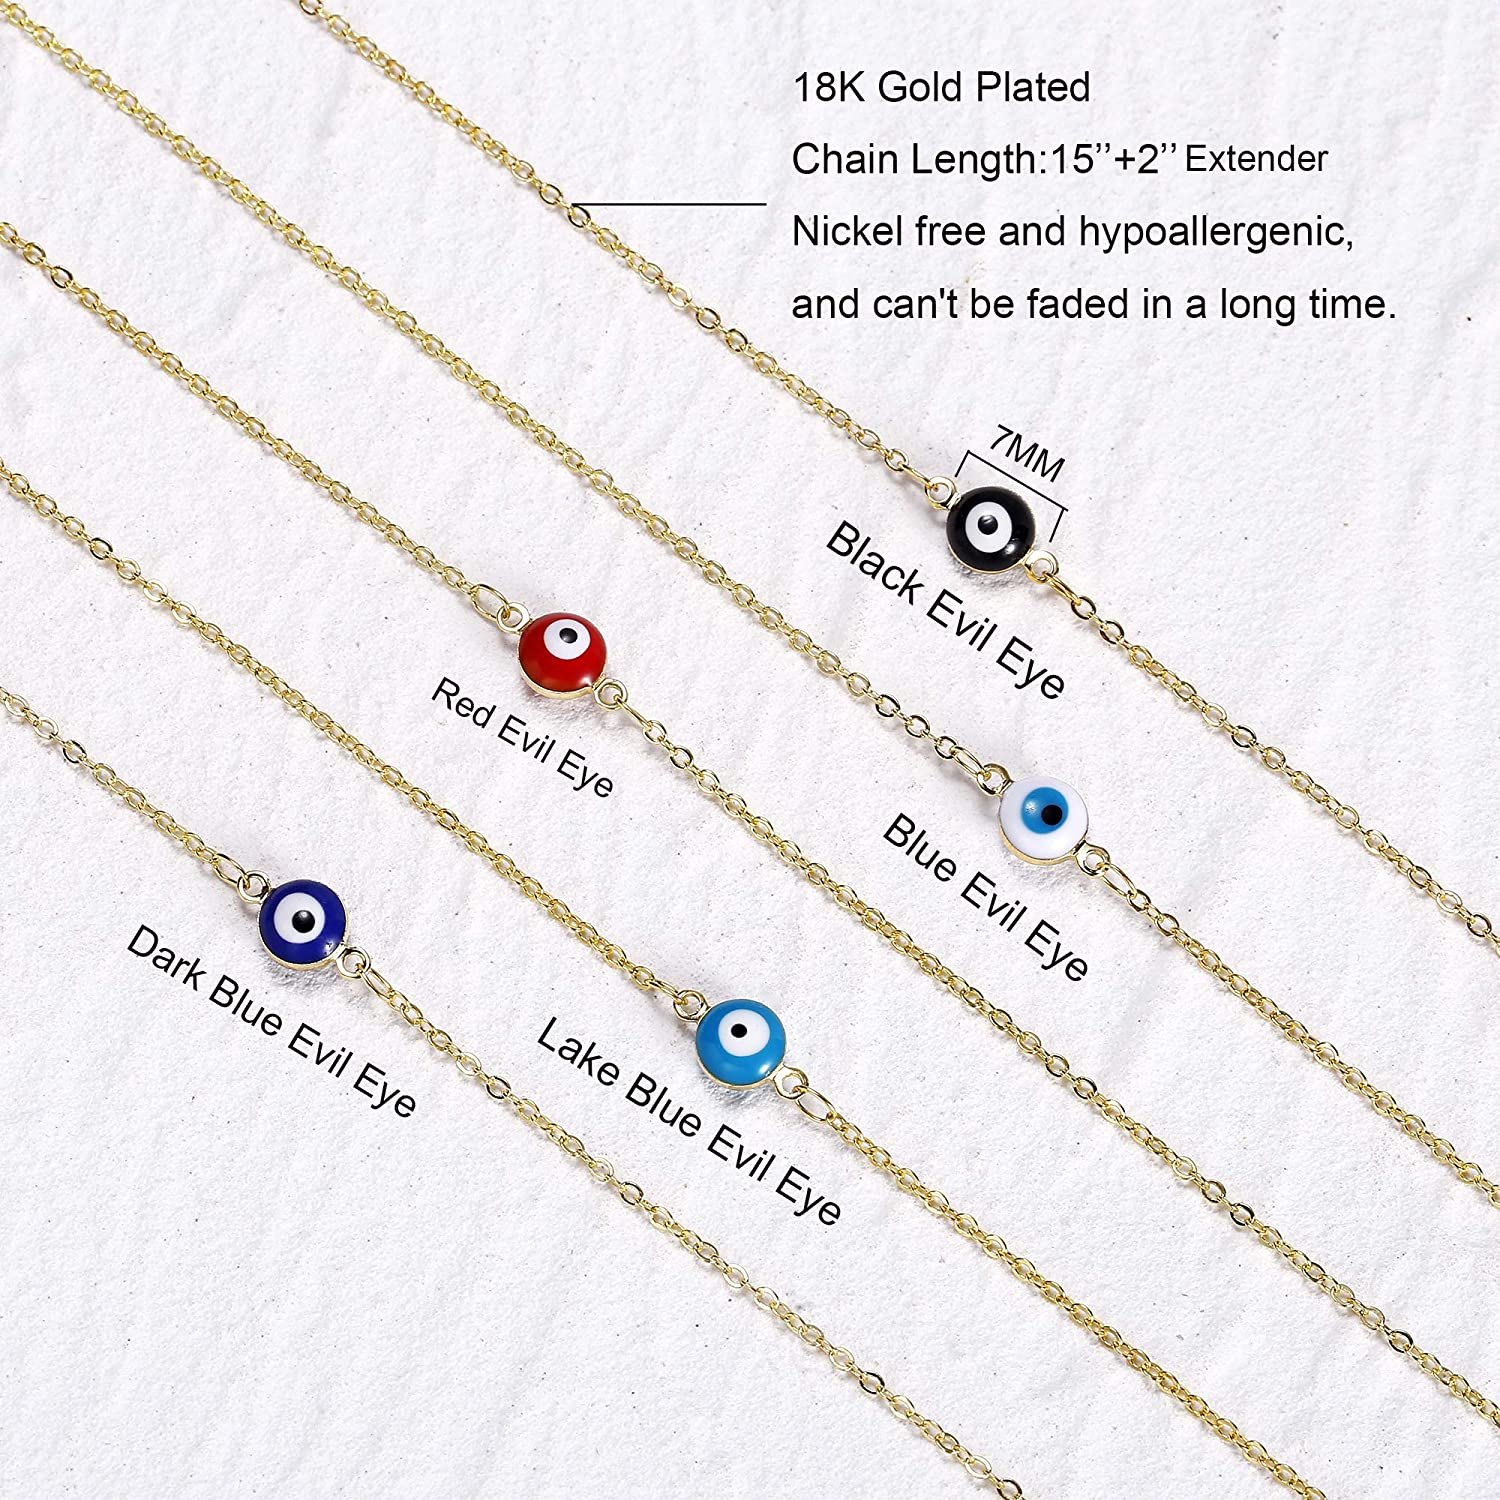 Tasiso 18K Gold Plated Evil Eye Choker Necklace Boho Simple Chain Necklace Cute Tiny Colorful Evil Eye Turkish Protection Choker Necklace for Women Teen Girls